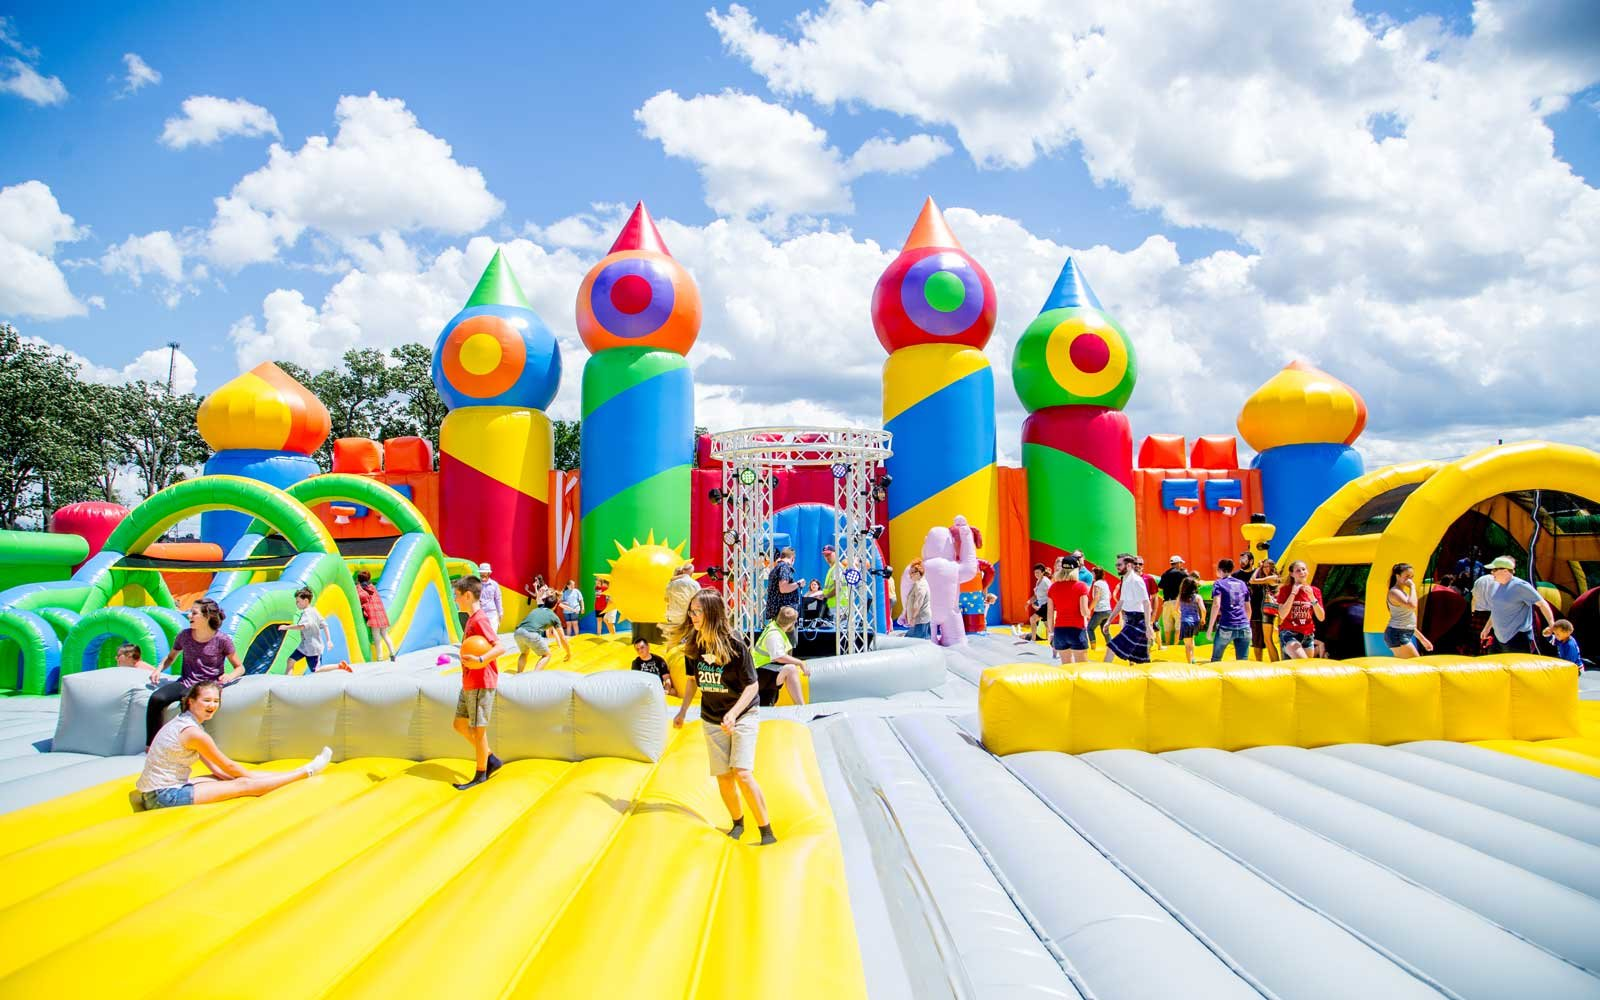 The World's Largest Bounce House Is Going on Tour This Summer